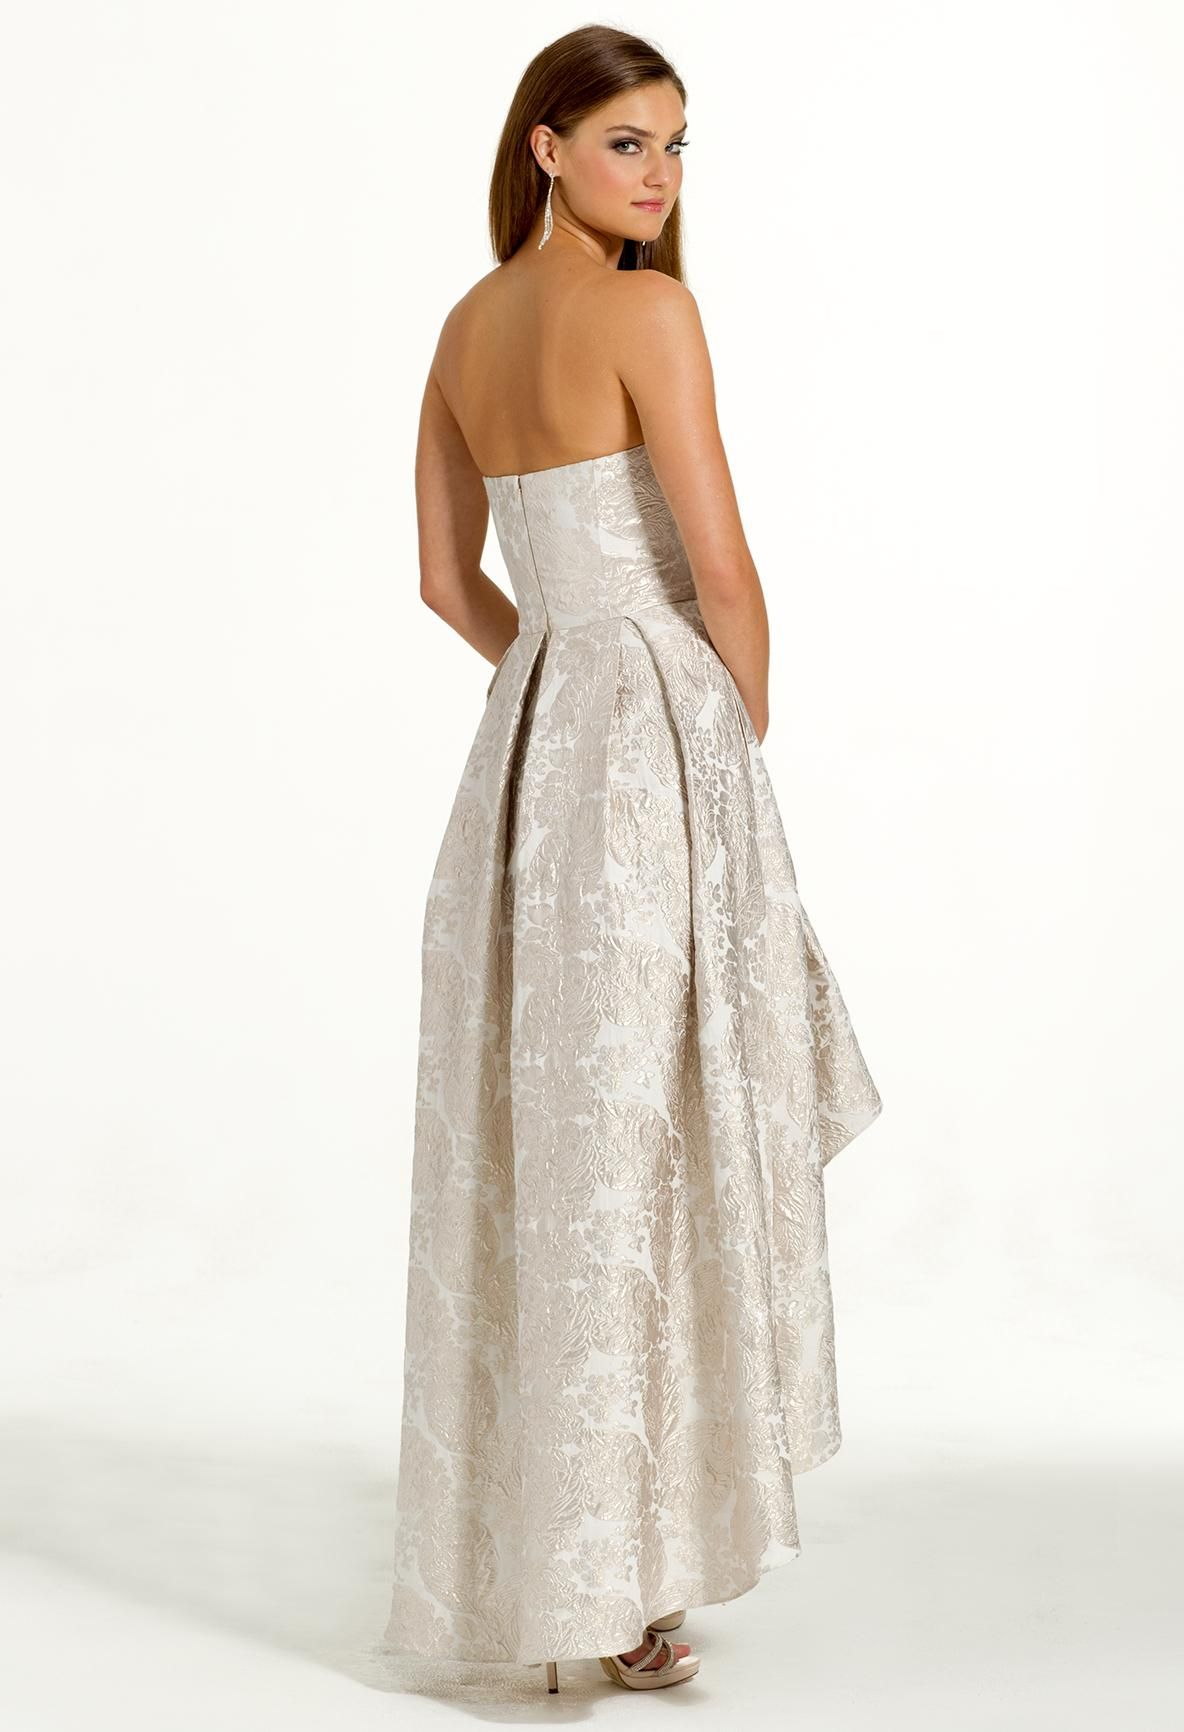 Lo lo lord and taylor party dresses - All Prom Dresses